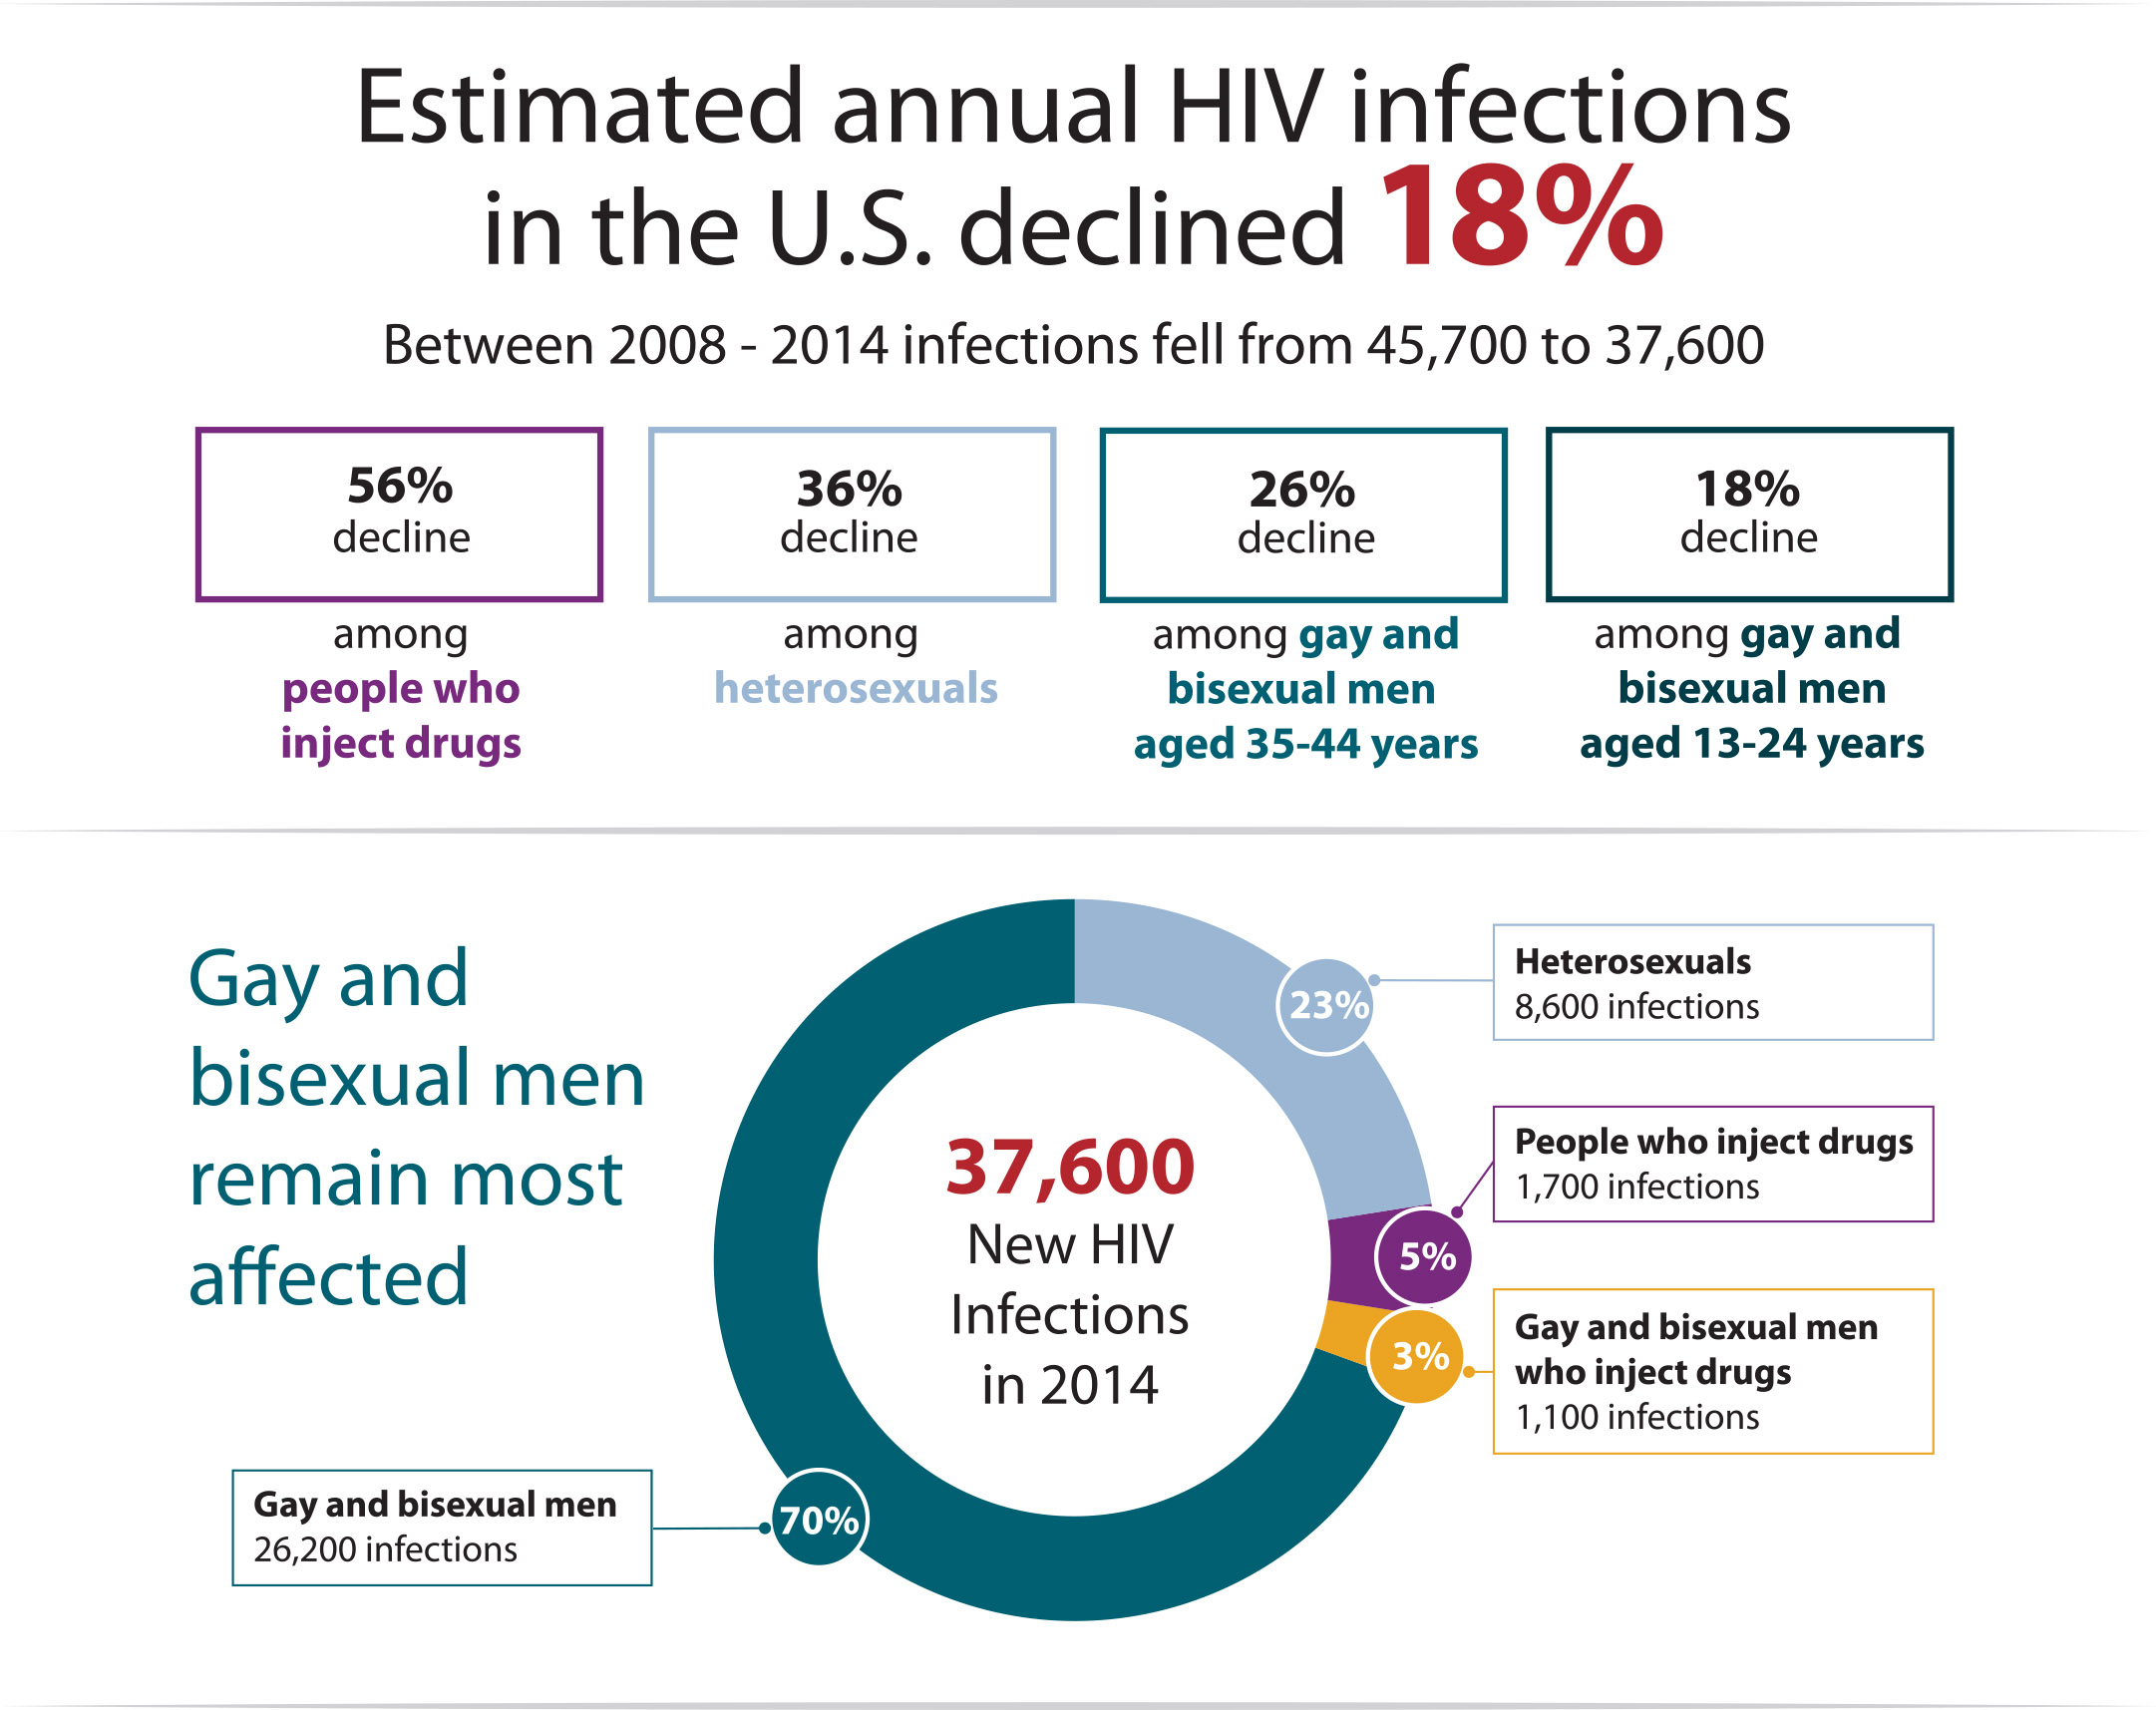 Estimated annual HIV infections in the U.S. declined 18%